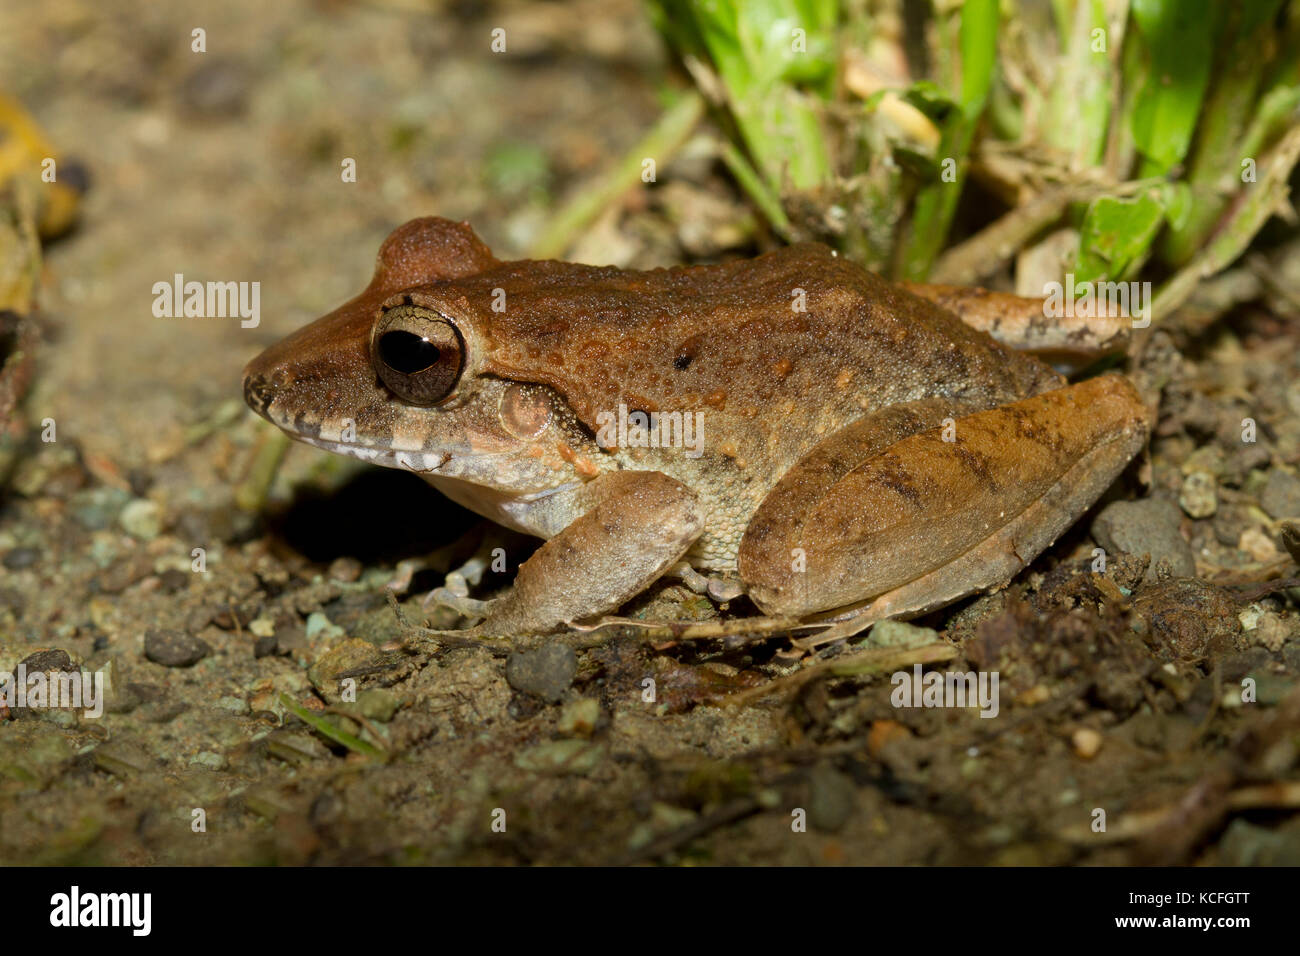 white-lipped frog, unidenfied species, Costa Rica, Central America - Stock Image